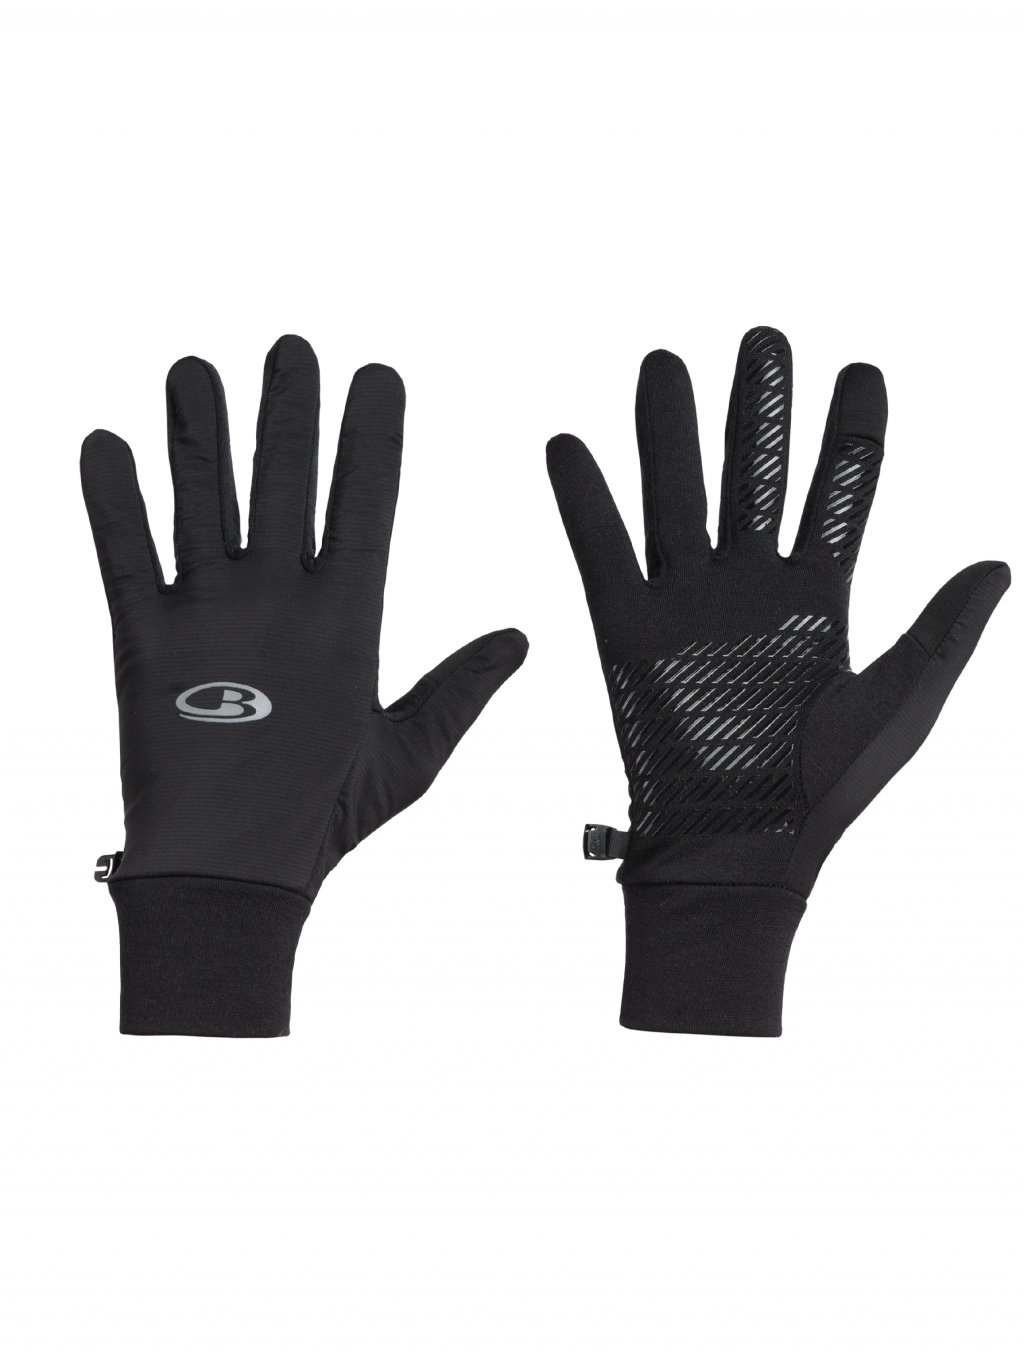 ICEBREAKER Adult Tech Trainer Hybrid Gloves, Black